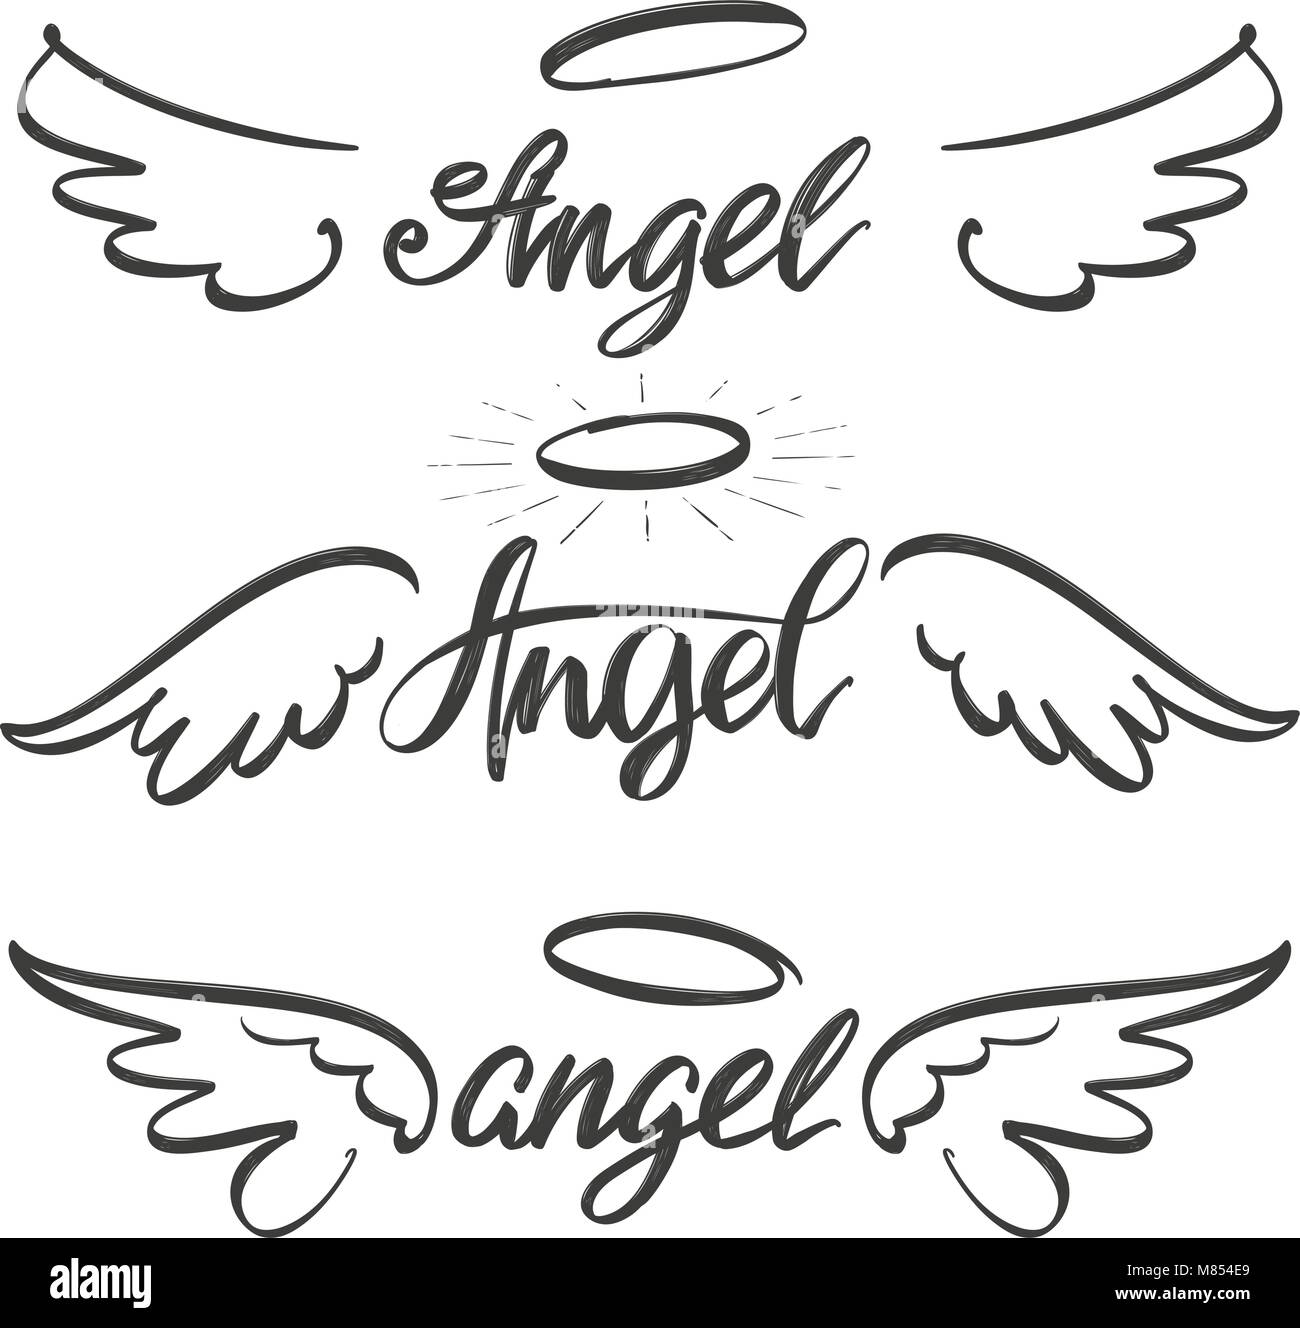 Drawing angel illustration stock photos drawing angel angel wings icon sketch collection religious calligraphic text symbol of christianity hand drawn vector illustration buycottarizona Images